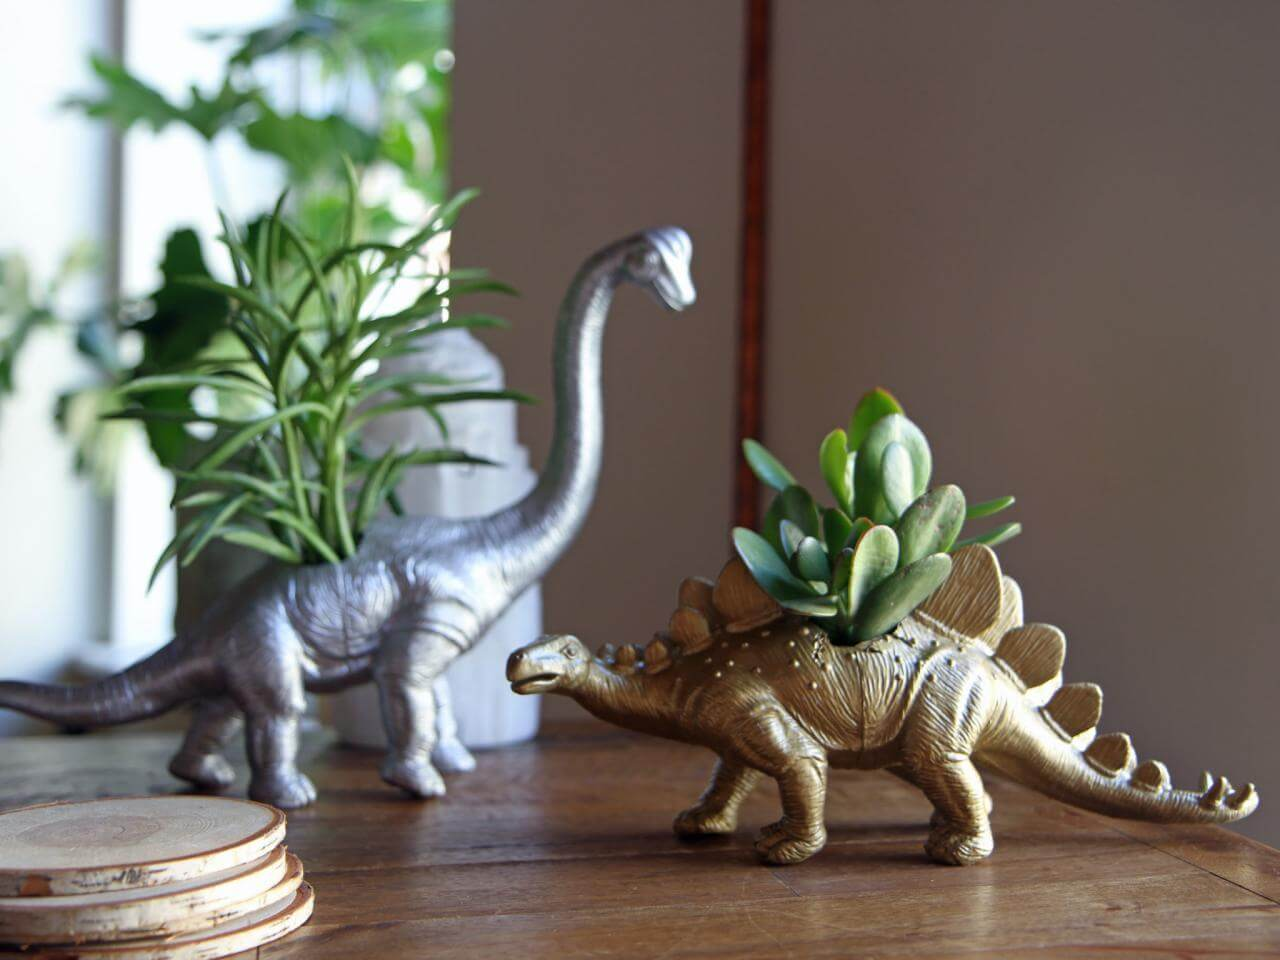 DIY planters made from dino toys